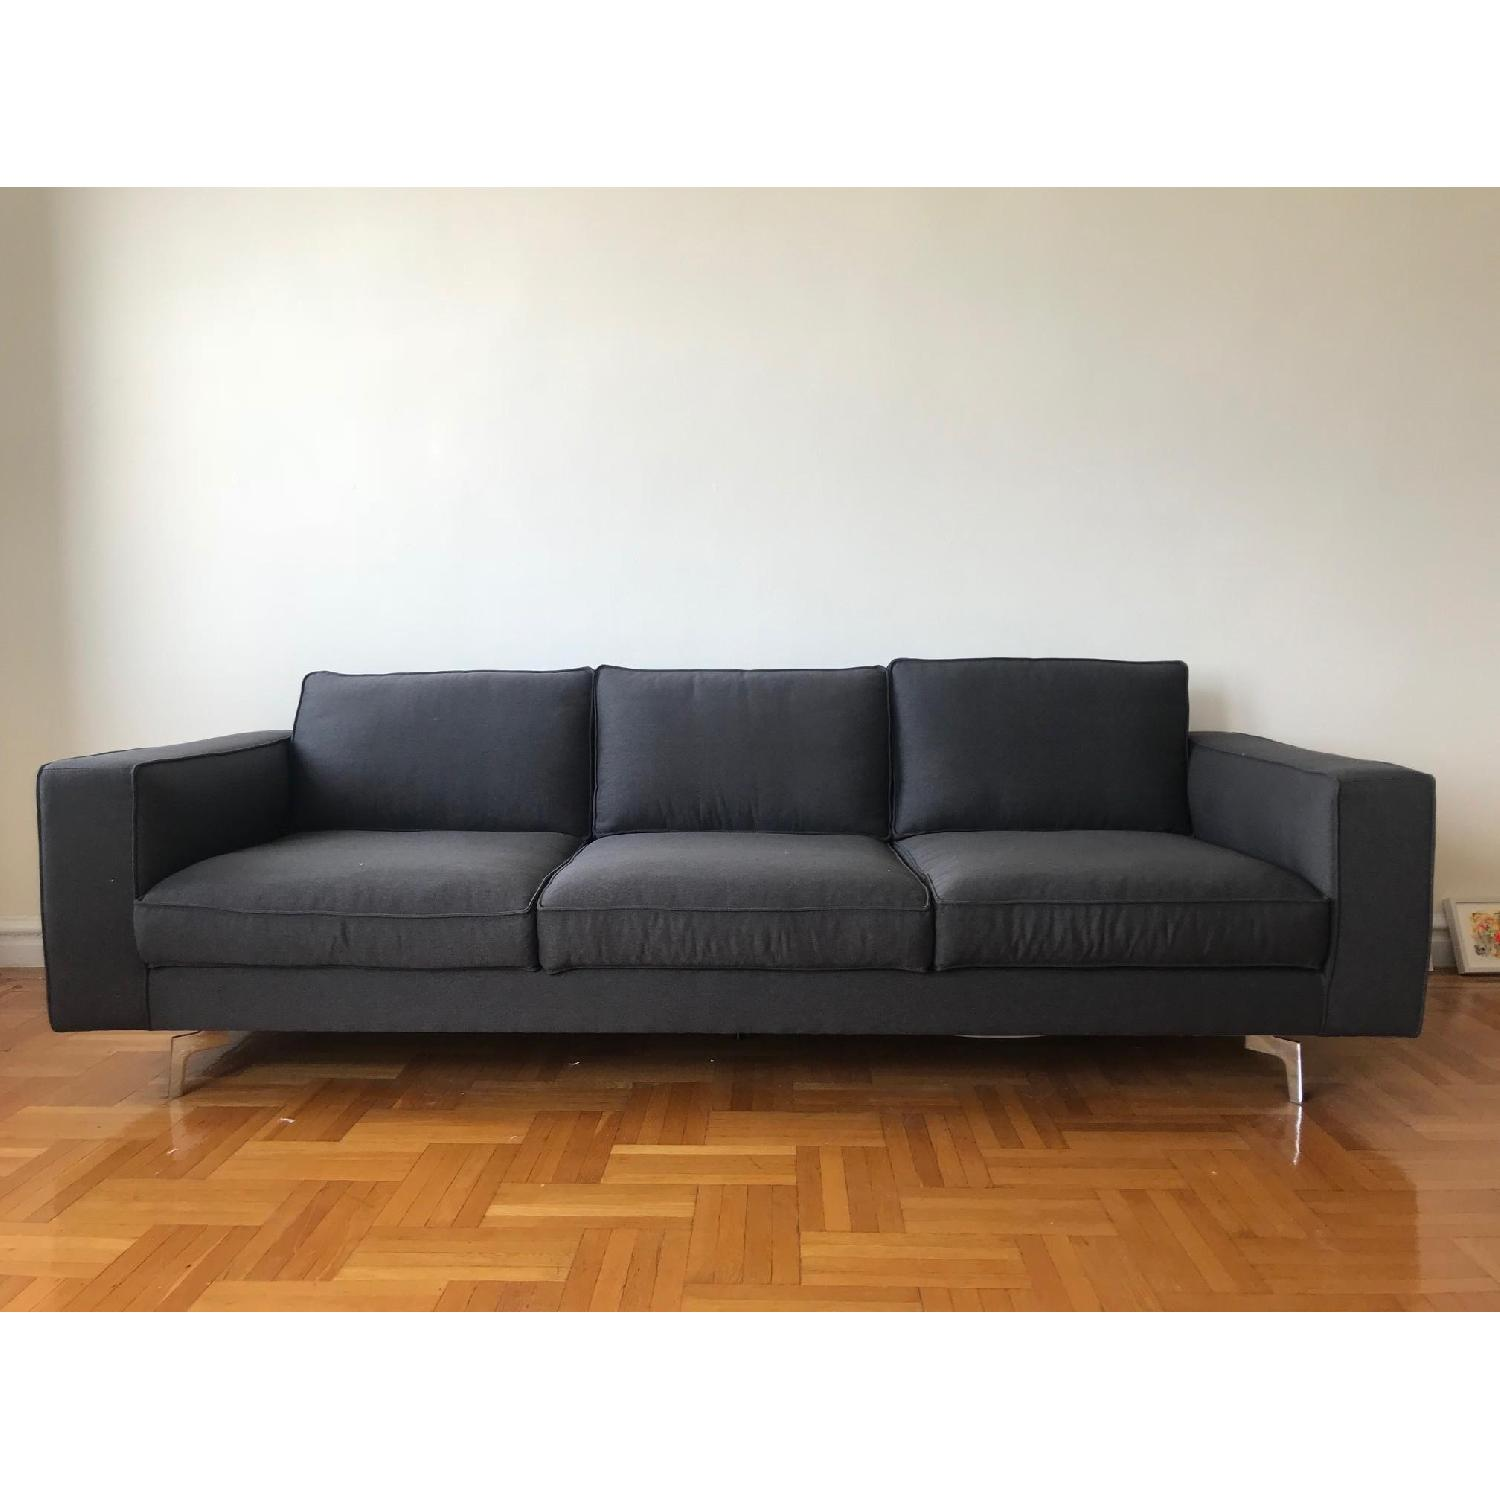 Calligaris Square 3 Seater Sofa w/ Metal Legs-0